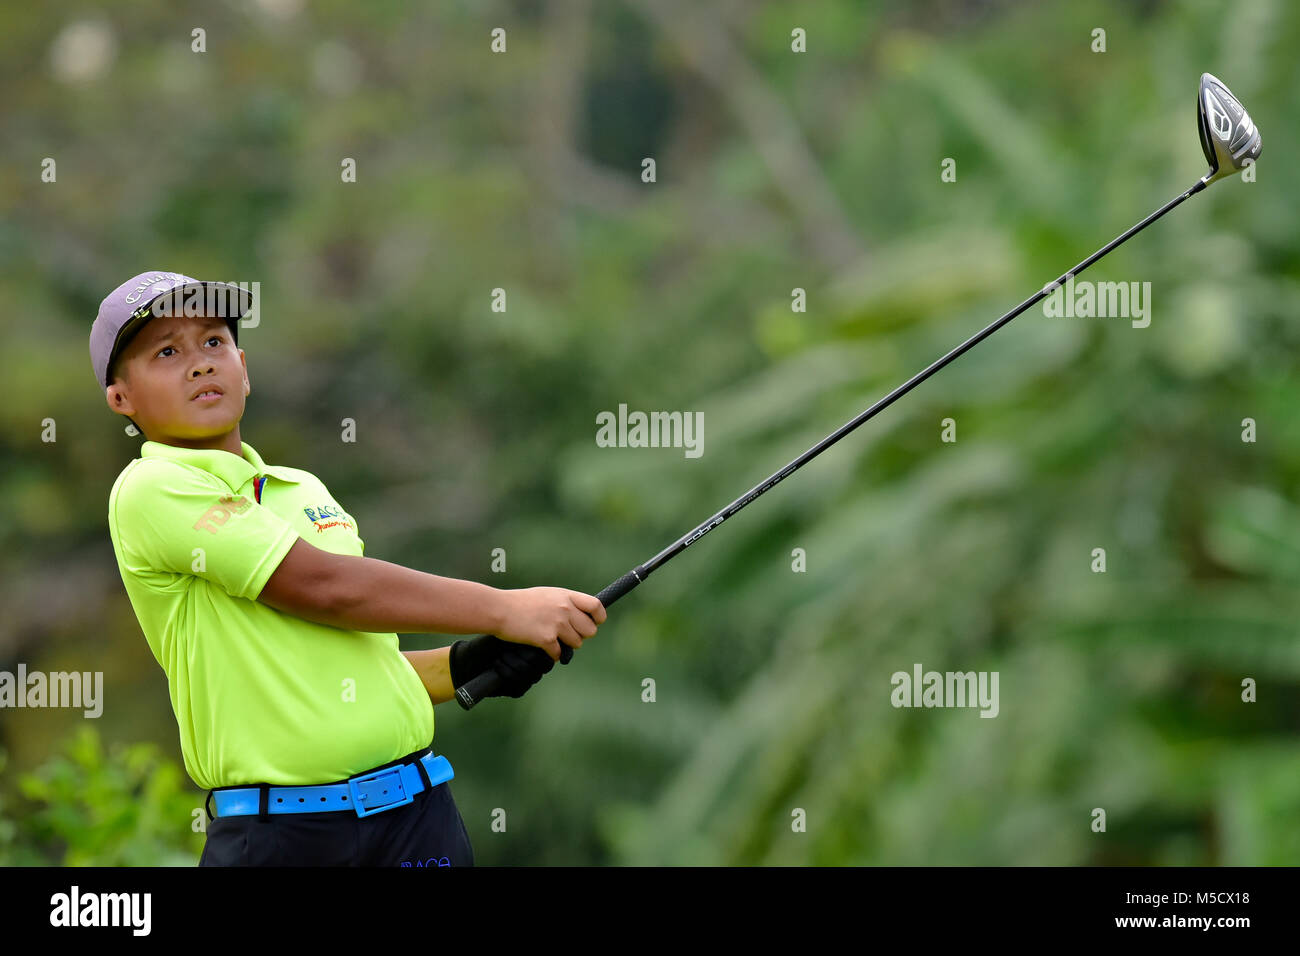 Danau, UKM Bangi - FEBRUARY 10: Aniq Nizam takes his tee shot on the 12th hole during Round One of the Danau Junior - Stock Image